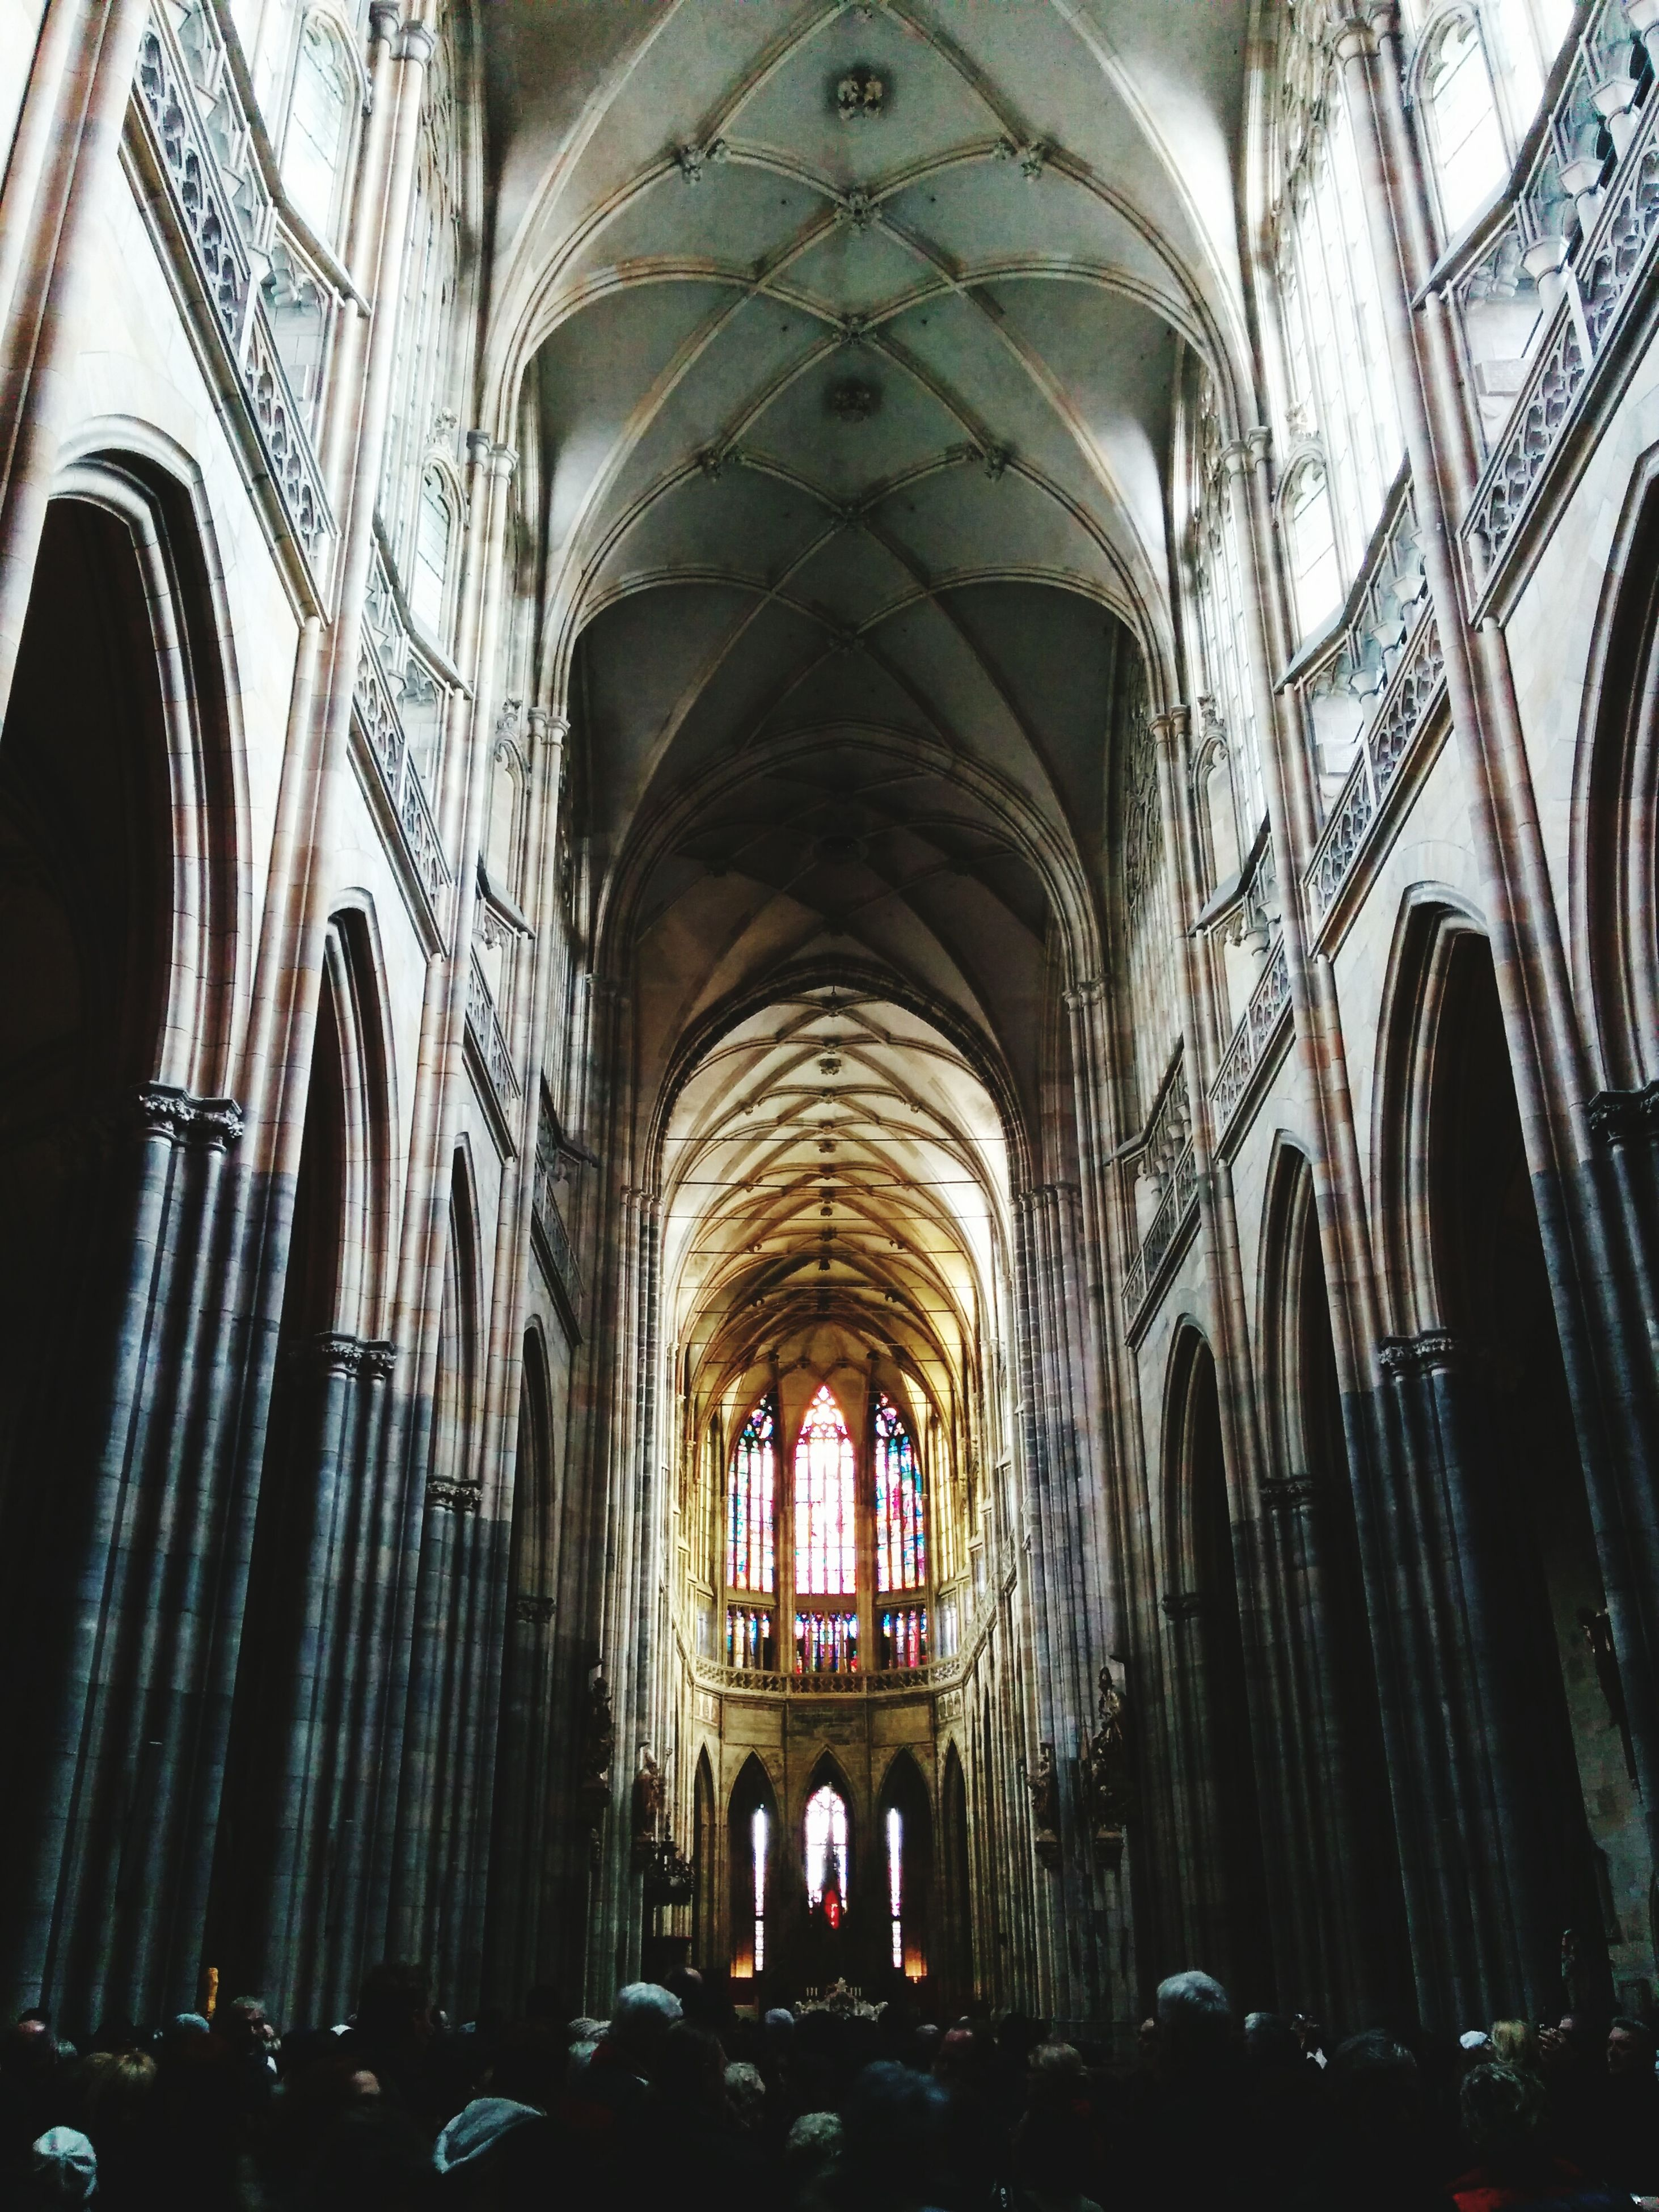 indoors, arch, place of worship, religion, church, spirituality, architecture, ceiling, famous place, interior, cathedral, tourism, travel destinations, built structure, history, travel, ornate, pew